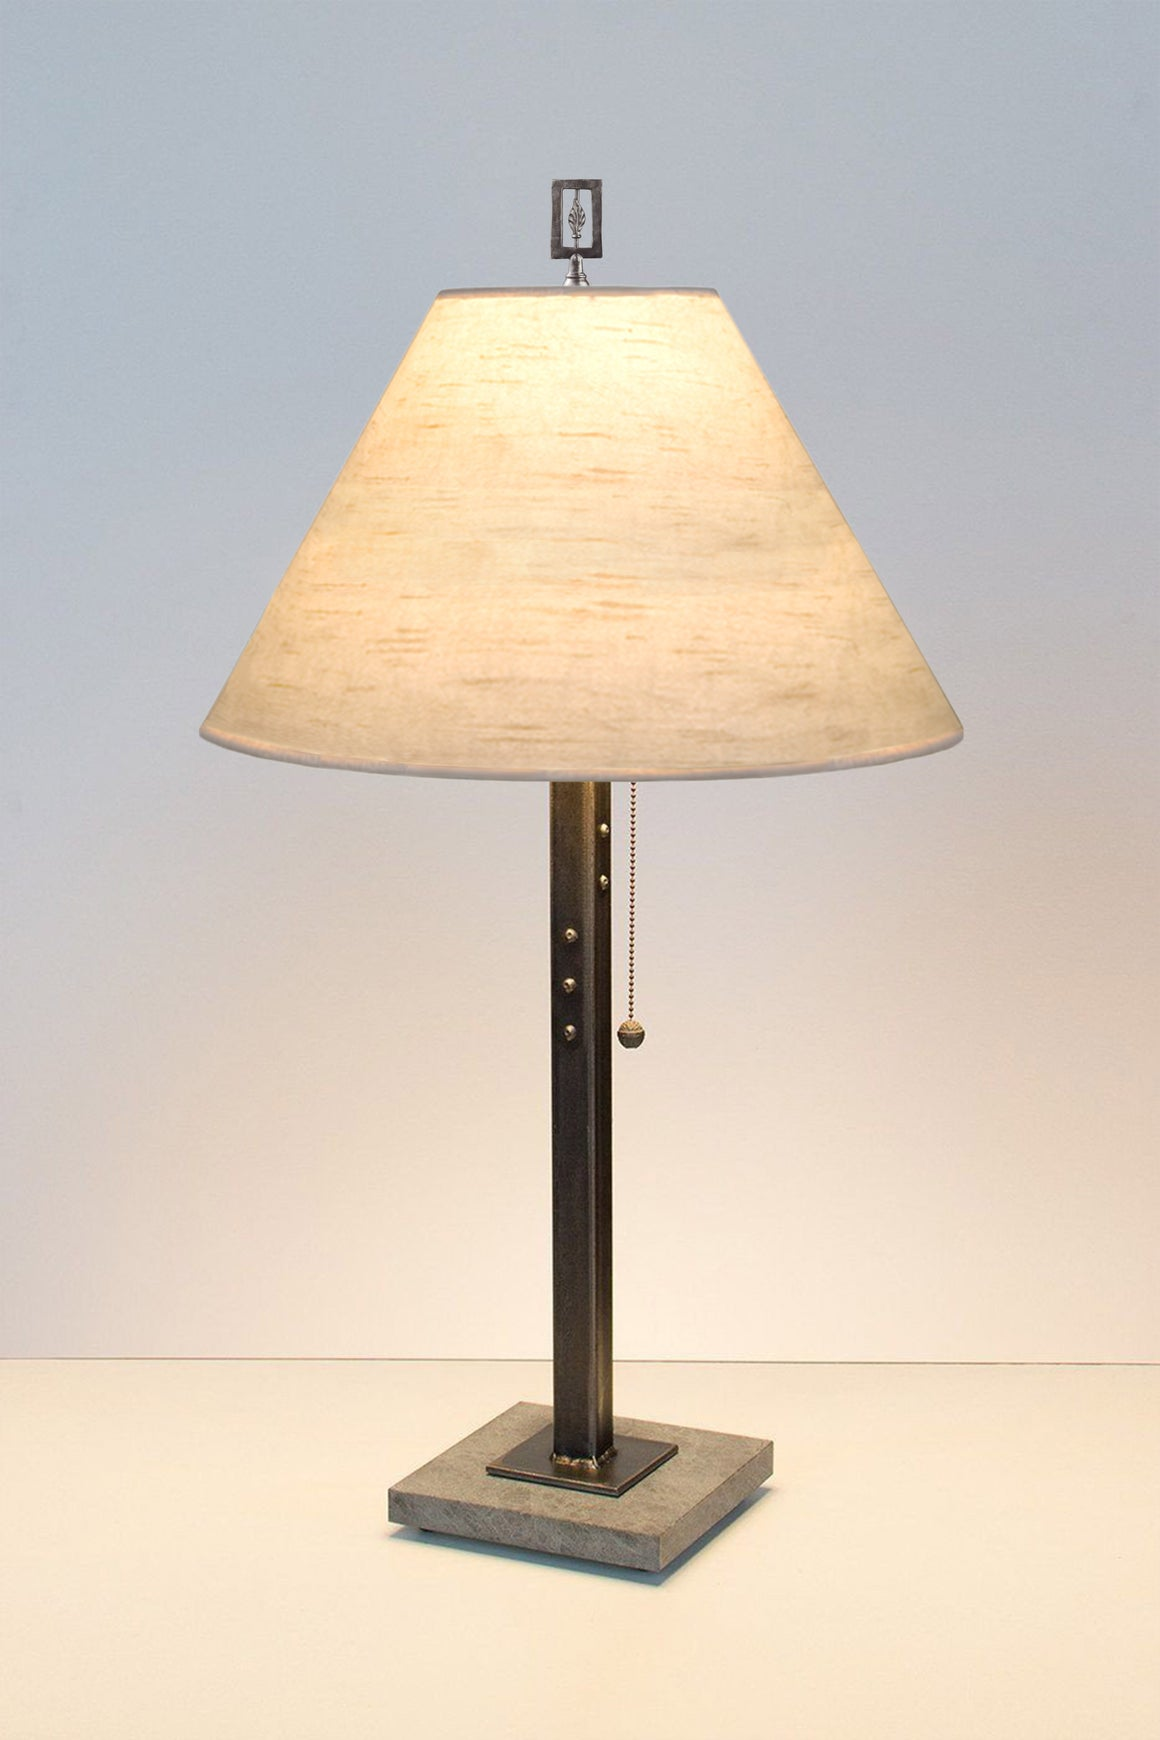 Steel Table Lamp on Italian Marble with Medium Conical Shade in Simply Birch